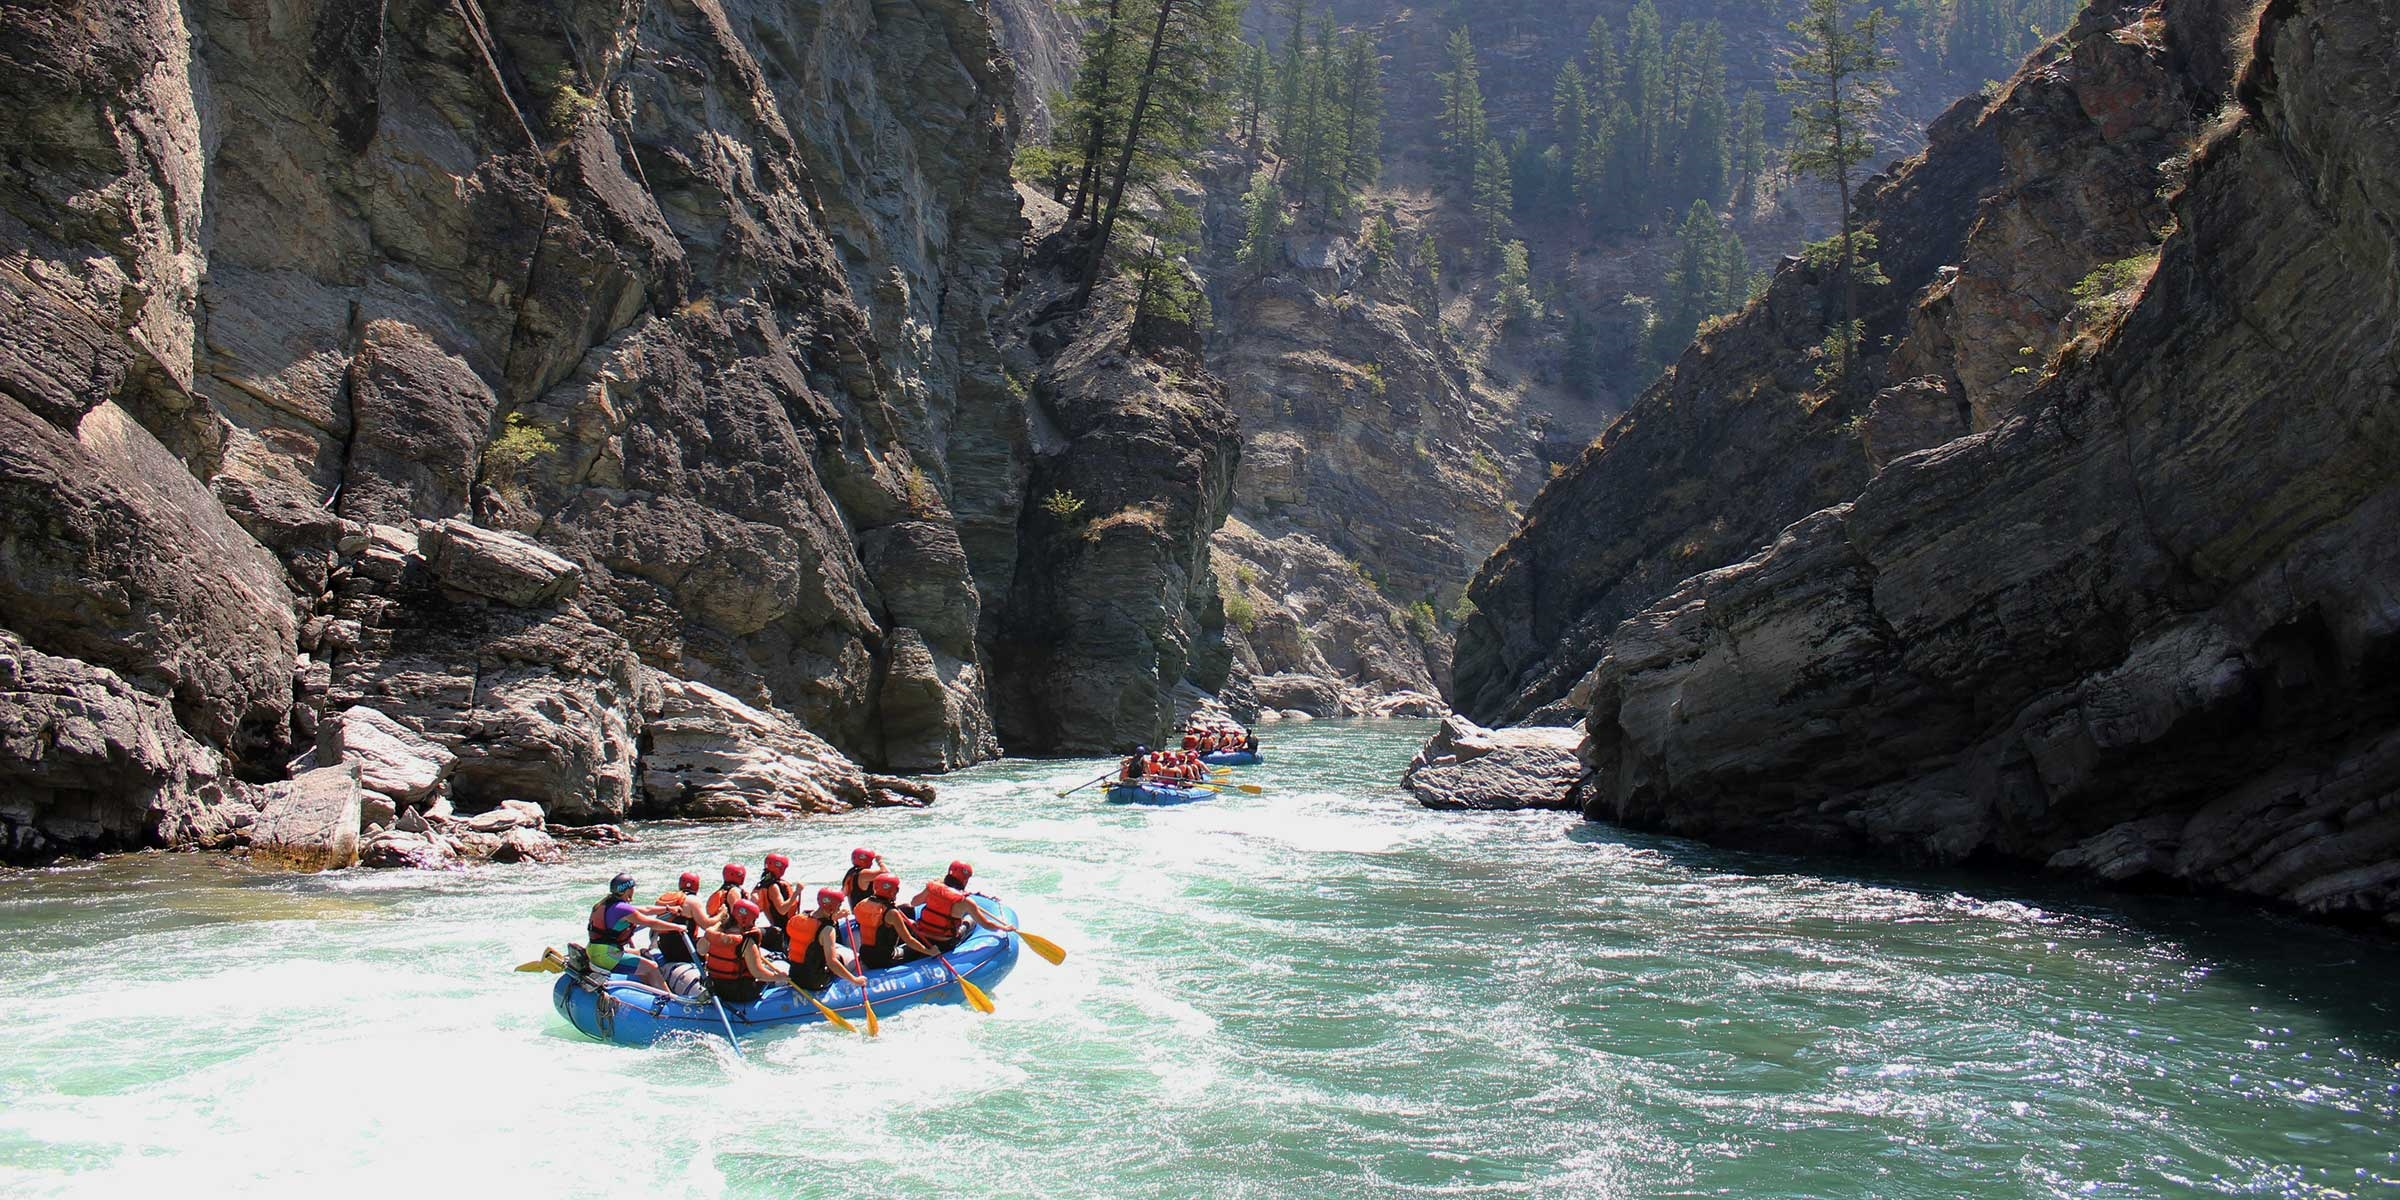 Rafting the Elk River Canyon in Fernie